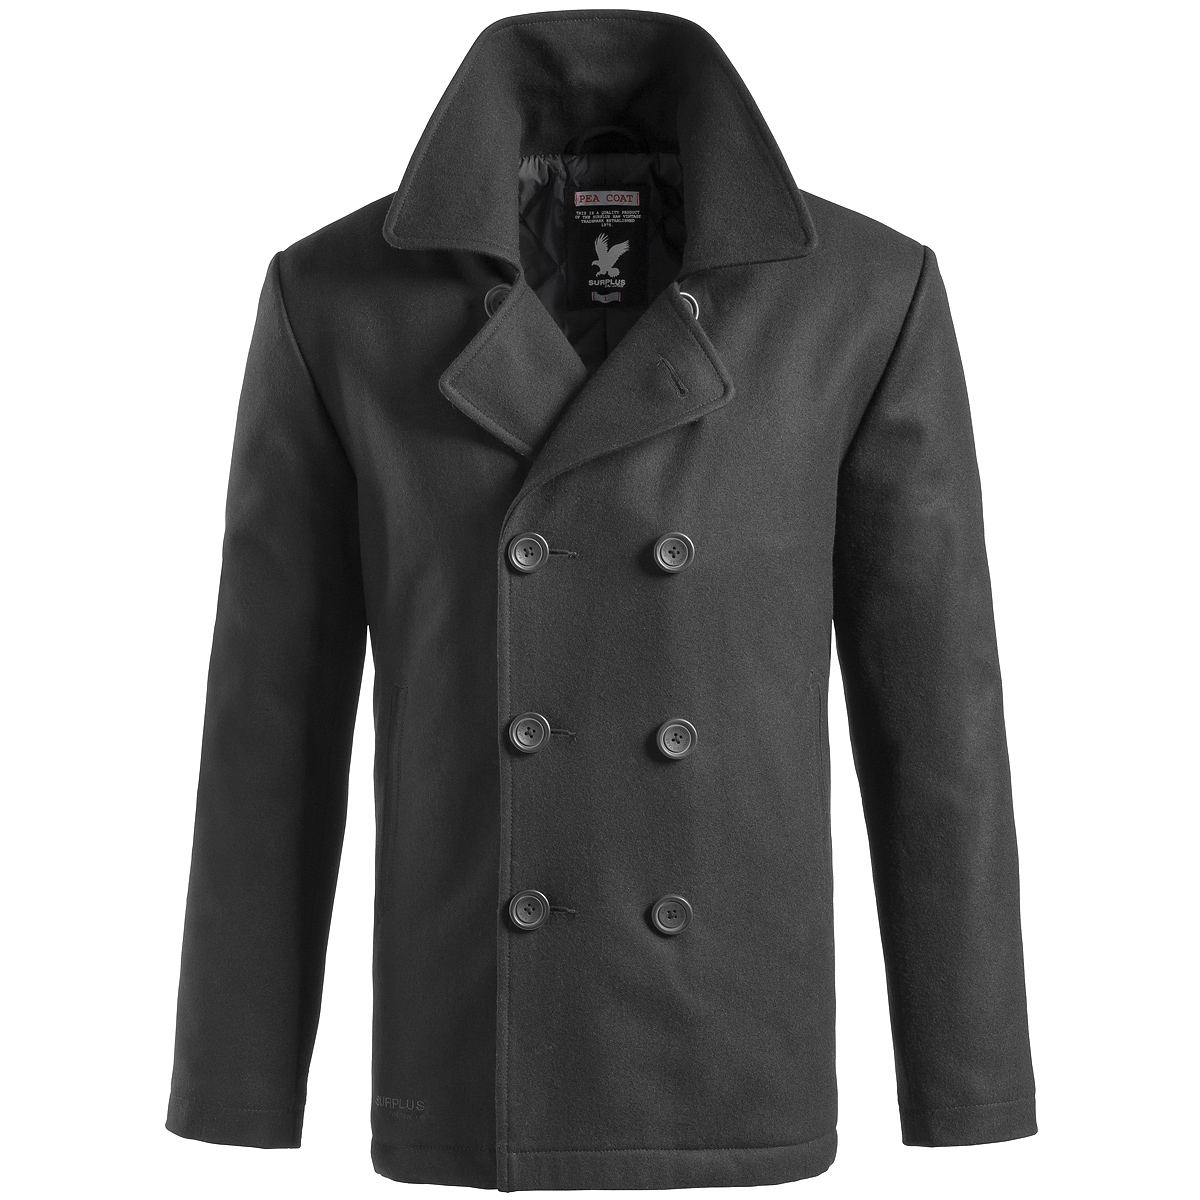 Military Surplus Pea Coats